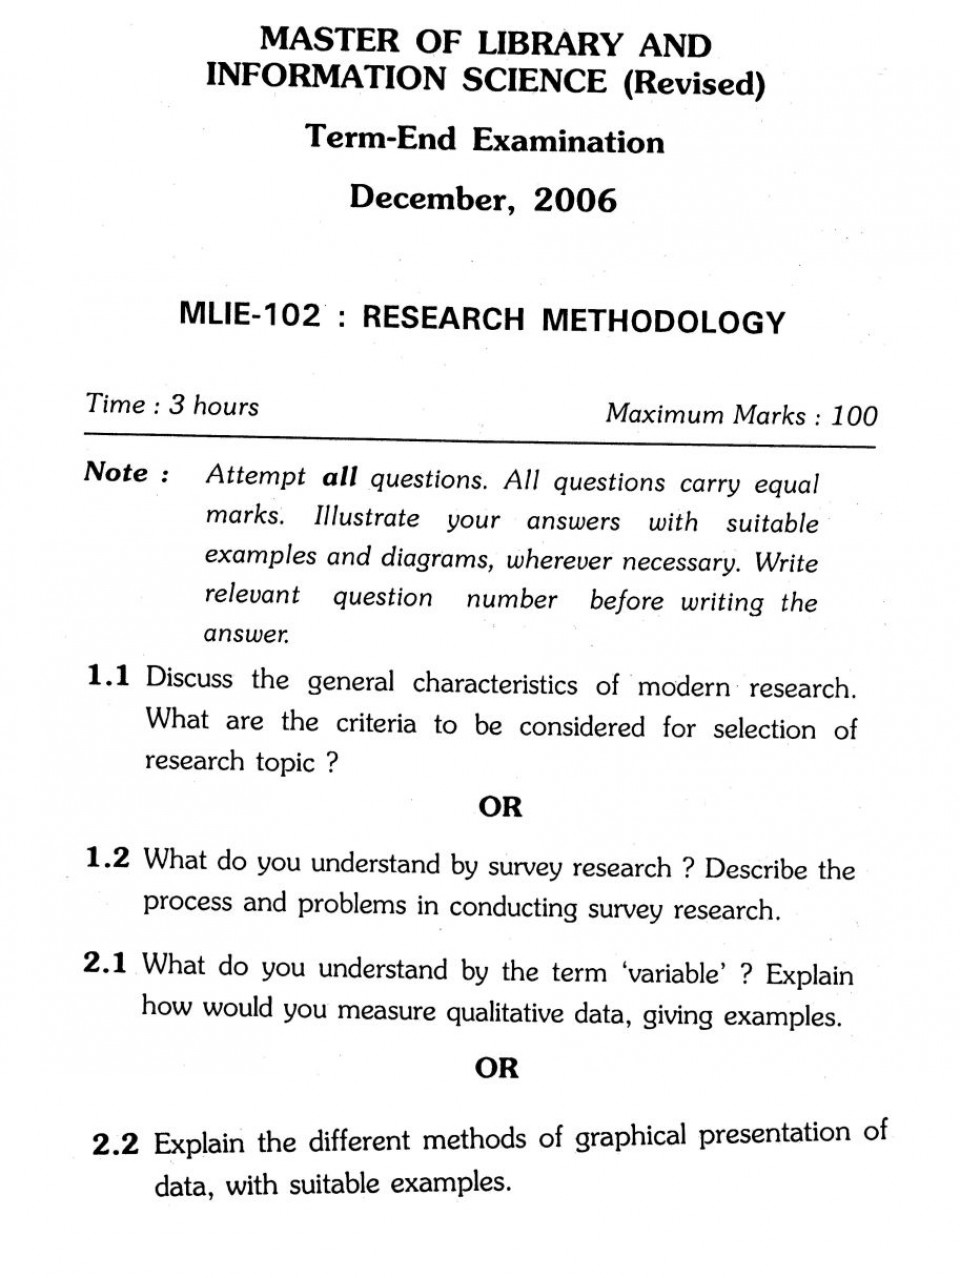 008 Research Paper Methodology In Ignou Master Of Library And Information Science Previous Years Question Papers Incredible About Bullying Teenage Pregnancy Example Engineering 960